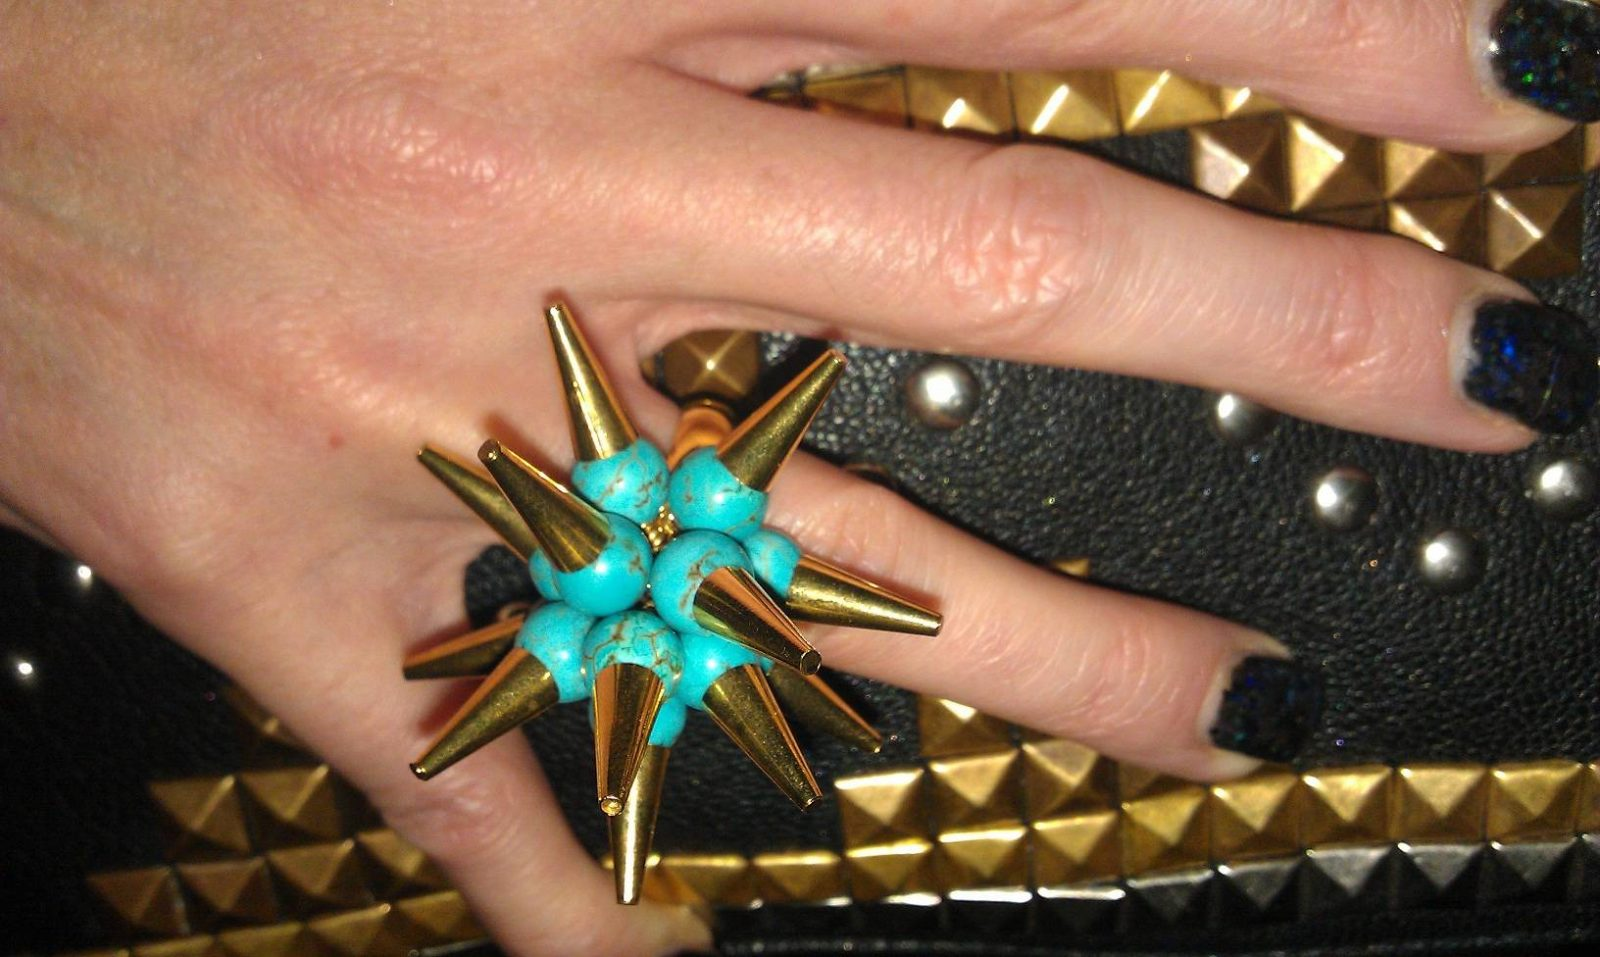 Spikes and Studs, Merle O'Grady spike ring